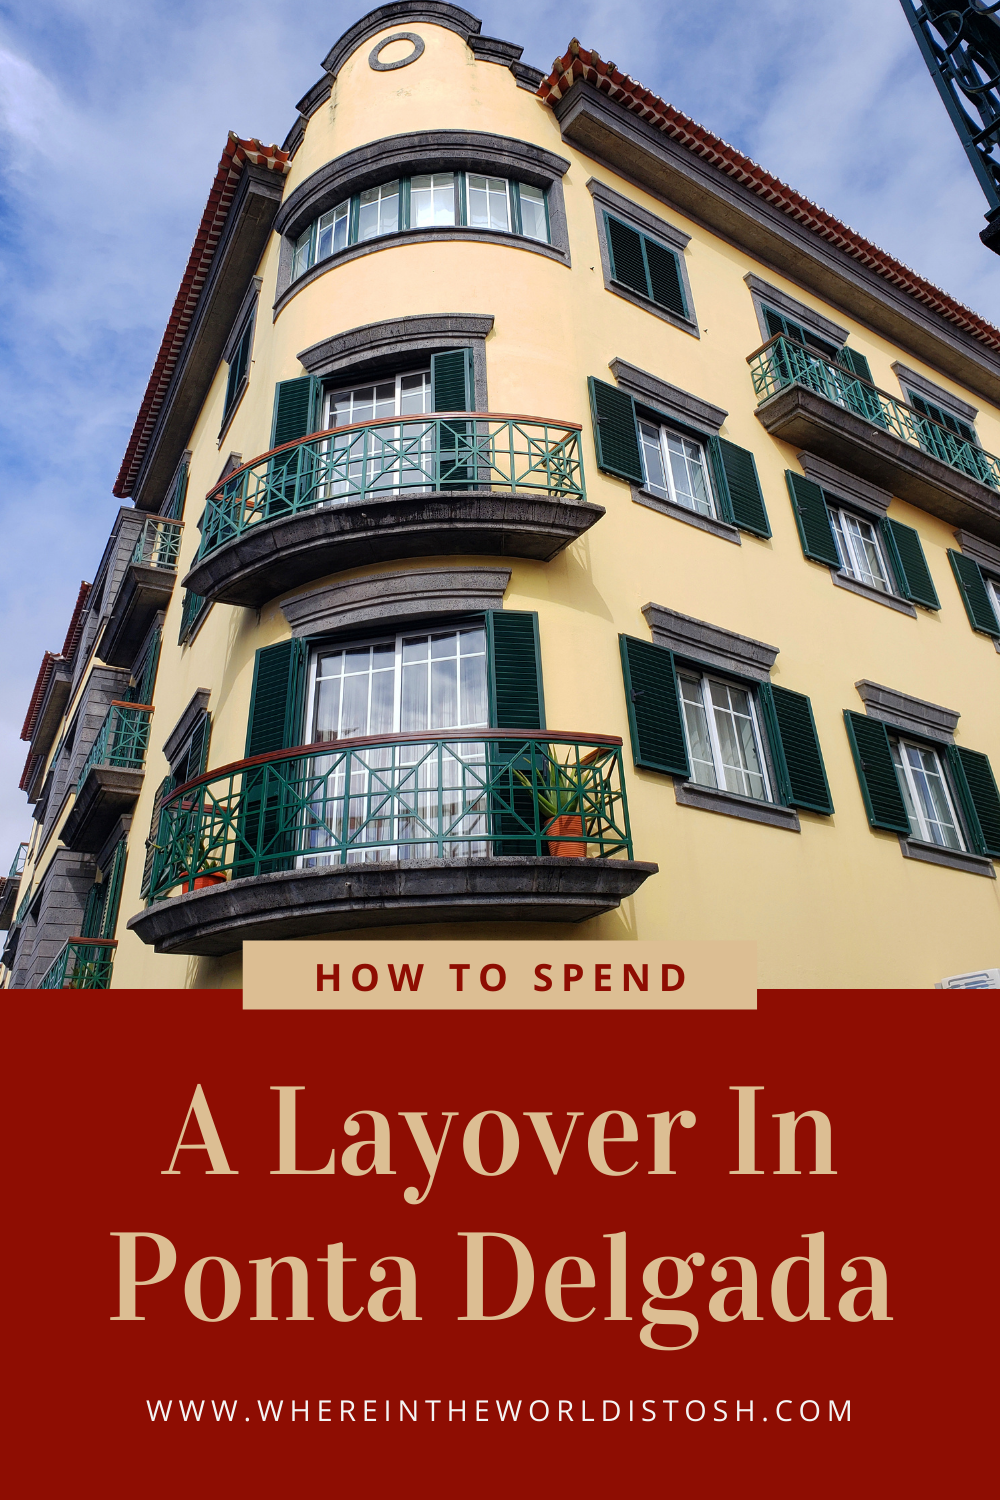 How To Spend A Layover In Ponta Delgada